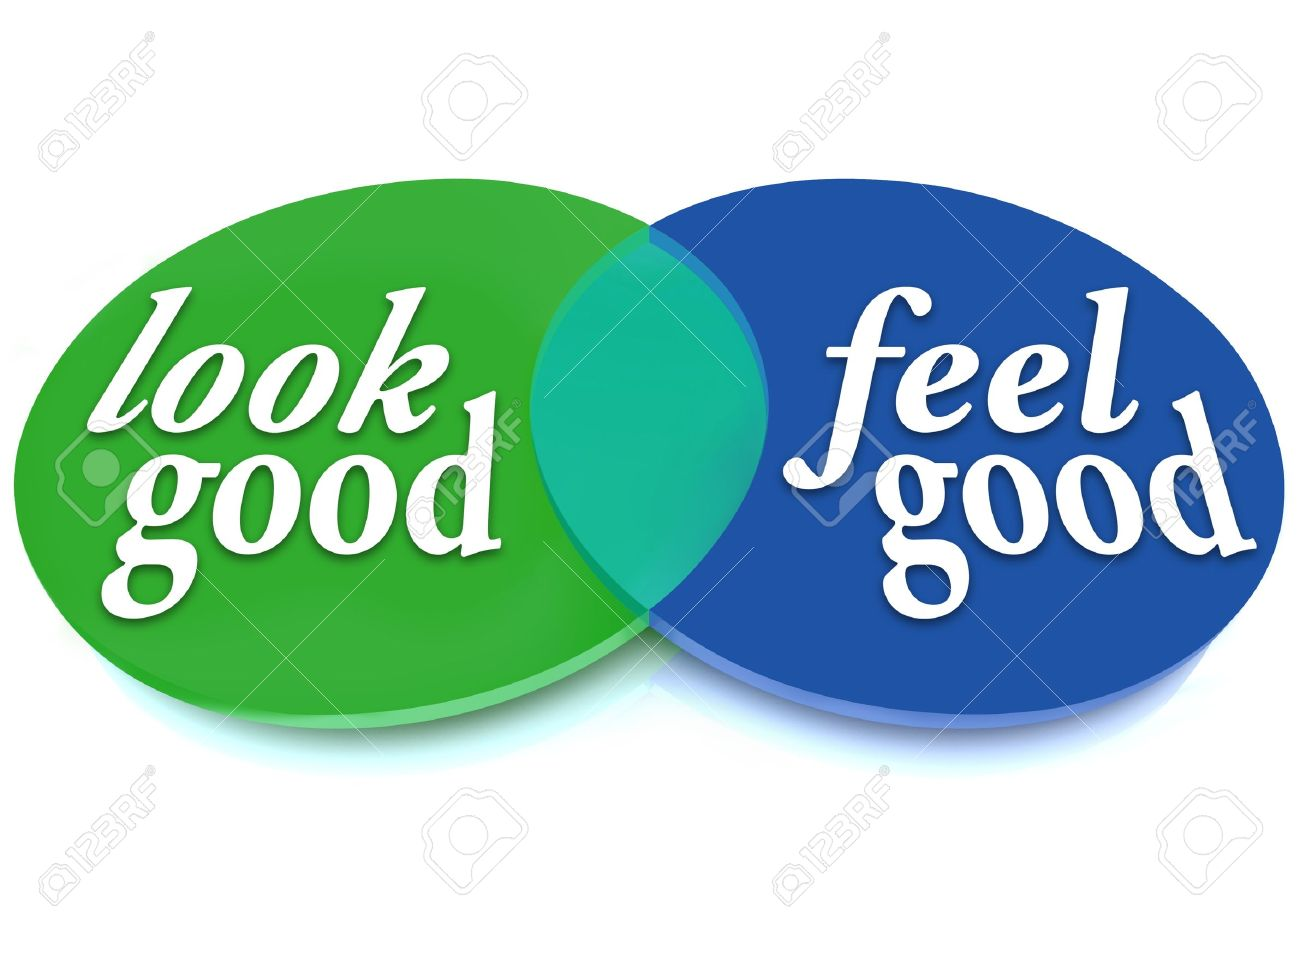 A venn diagram of overlapping circles with the words look good a venn diagram of overlapping circles with the words look good and feel good stock photo pooptronica